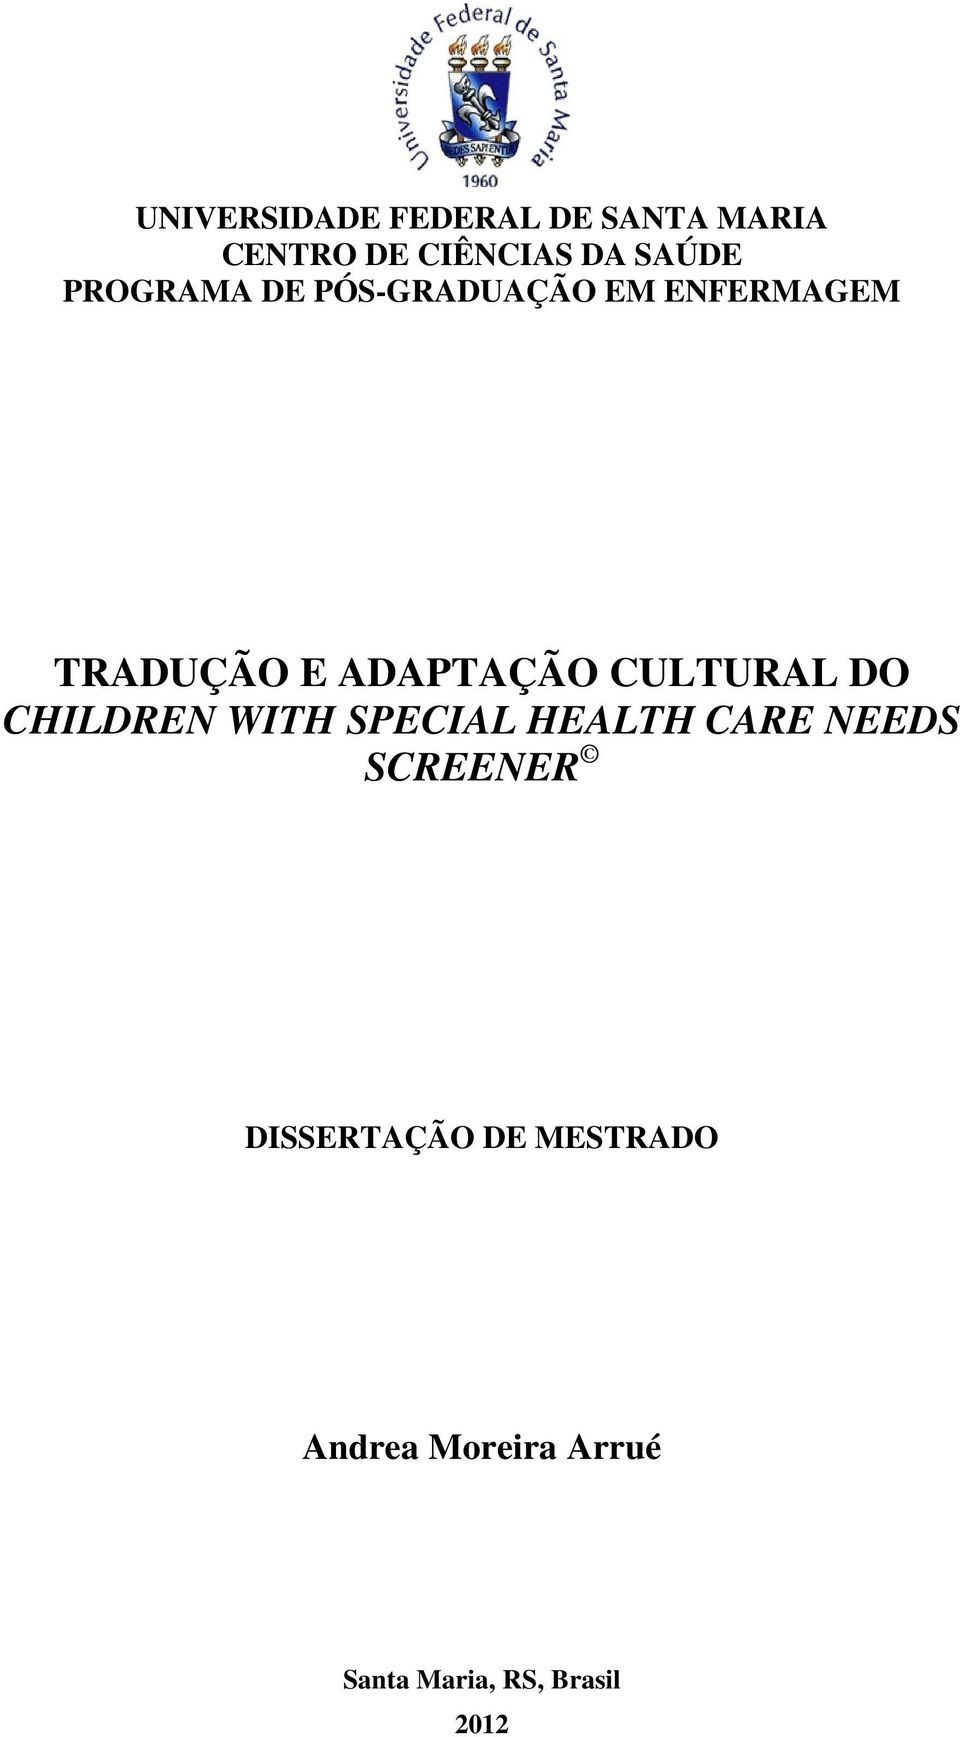 CULTURAL DO CHILDREN WITH SPECIAL HEALTH CARE NEEDS SCREENER